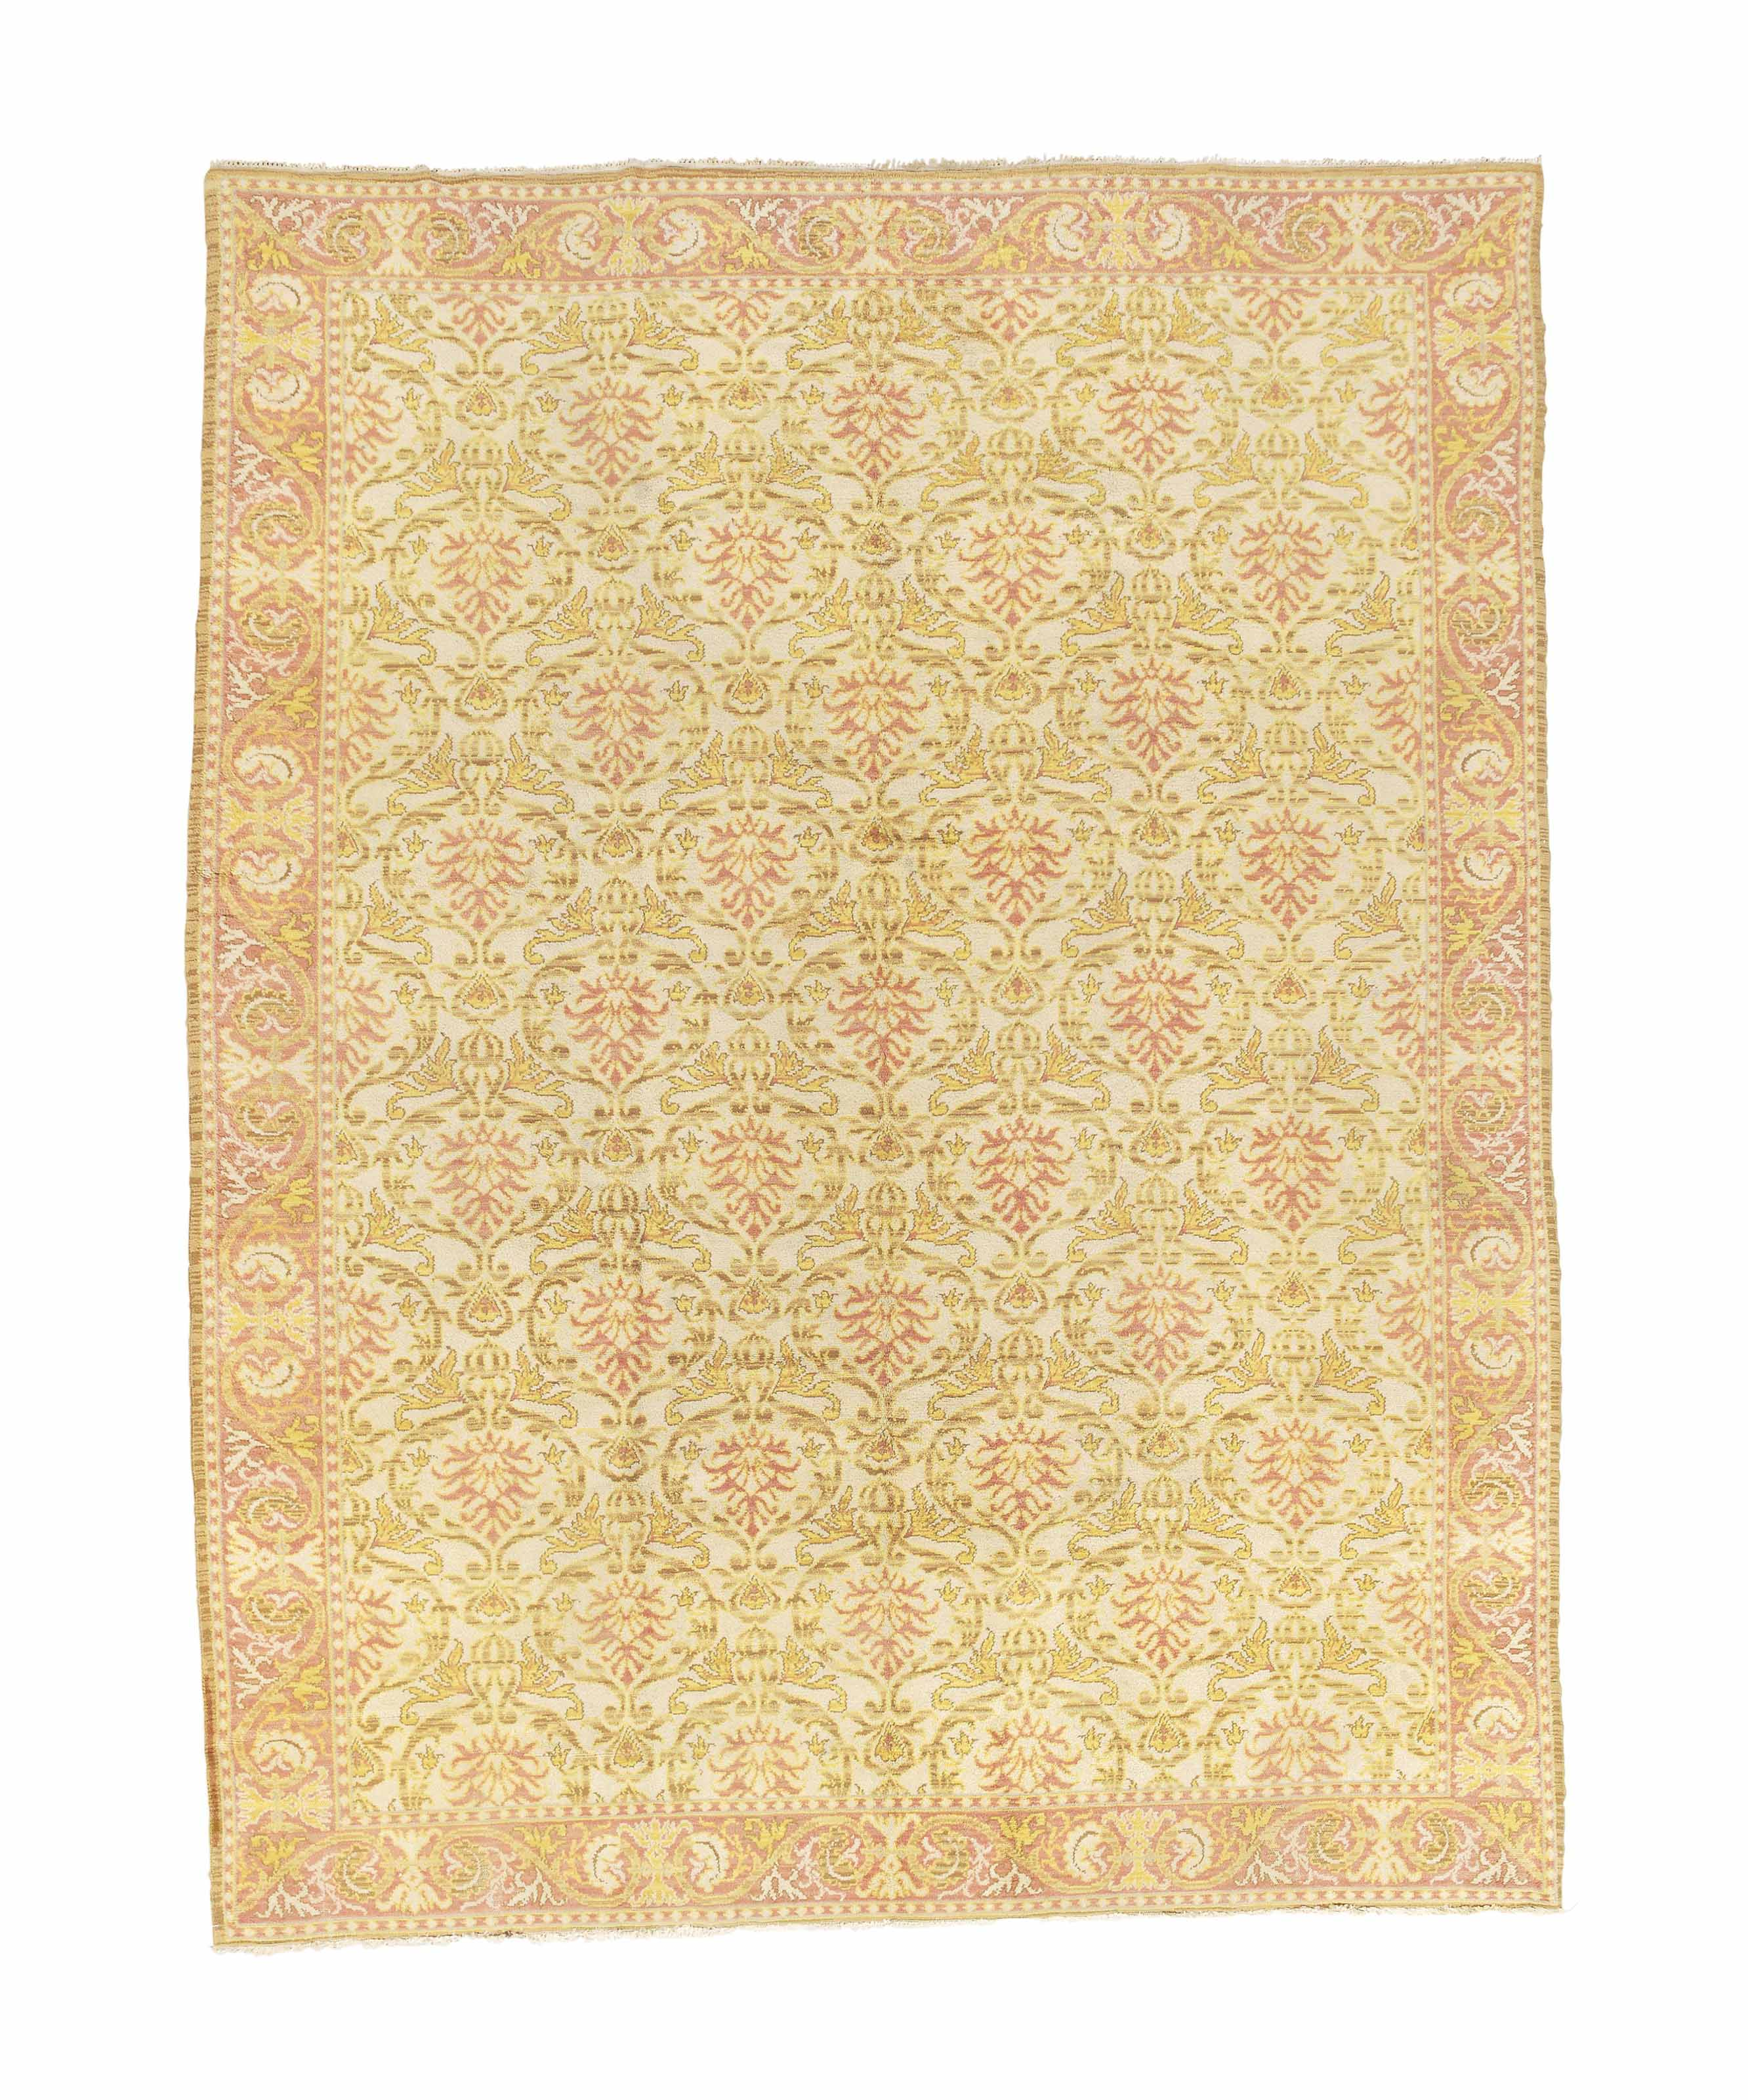 A CUENCA STYLE SPANISH CARPET